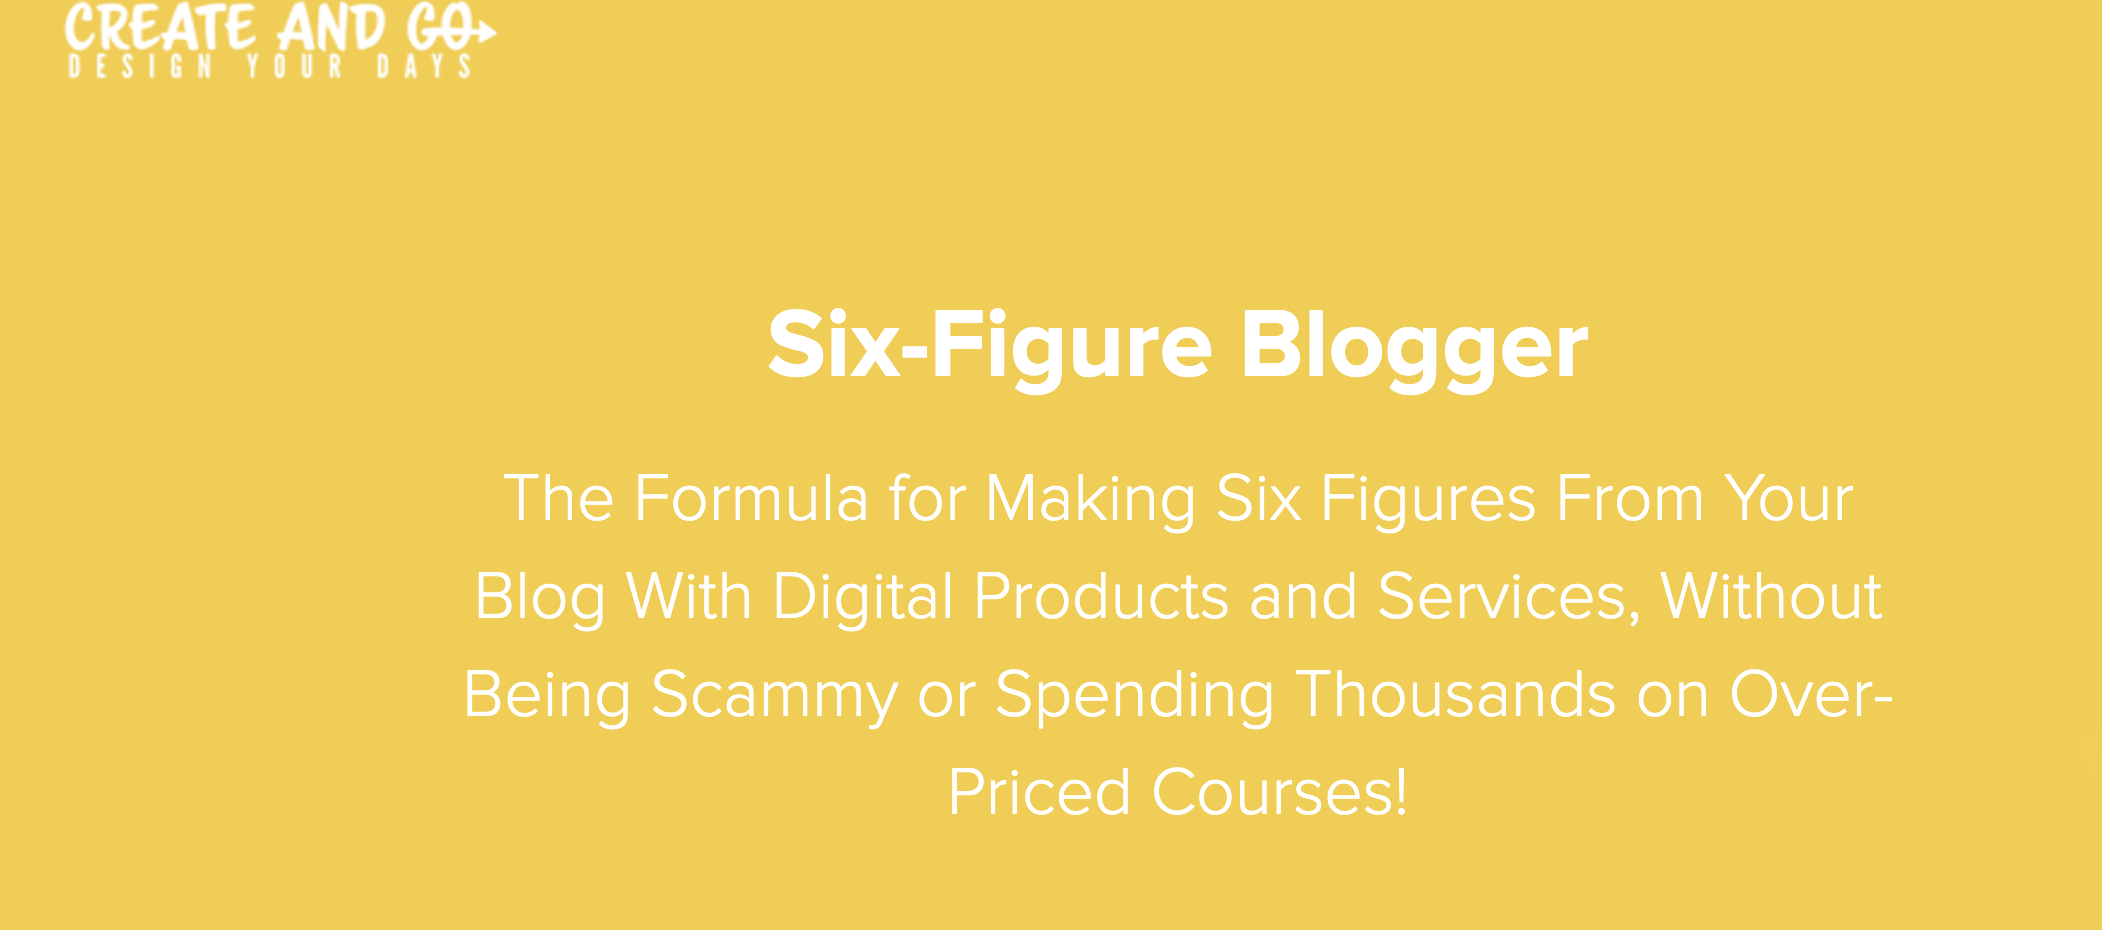 Six Figure Blogger Review – How Much Can You Make?